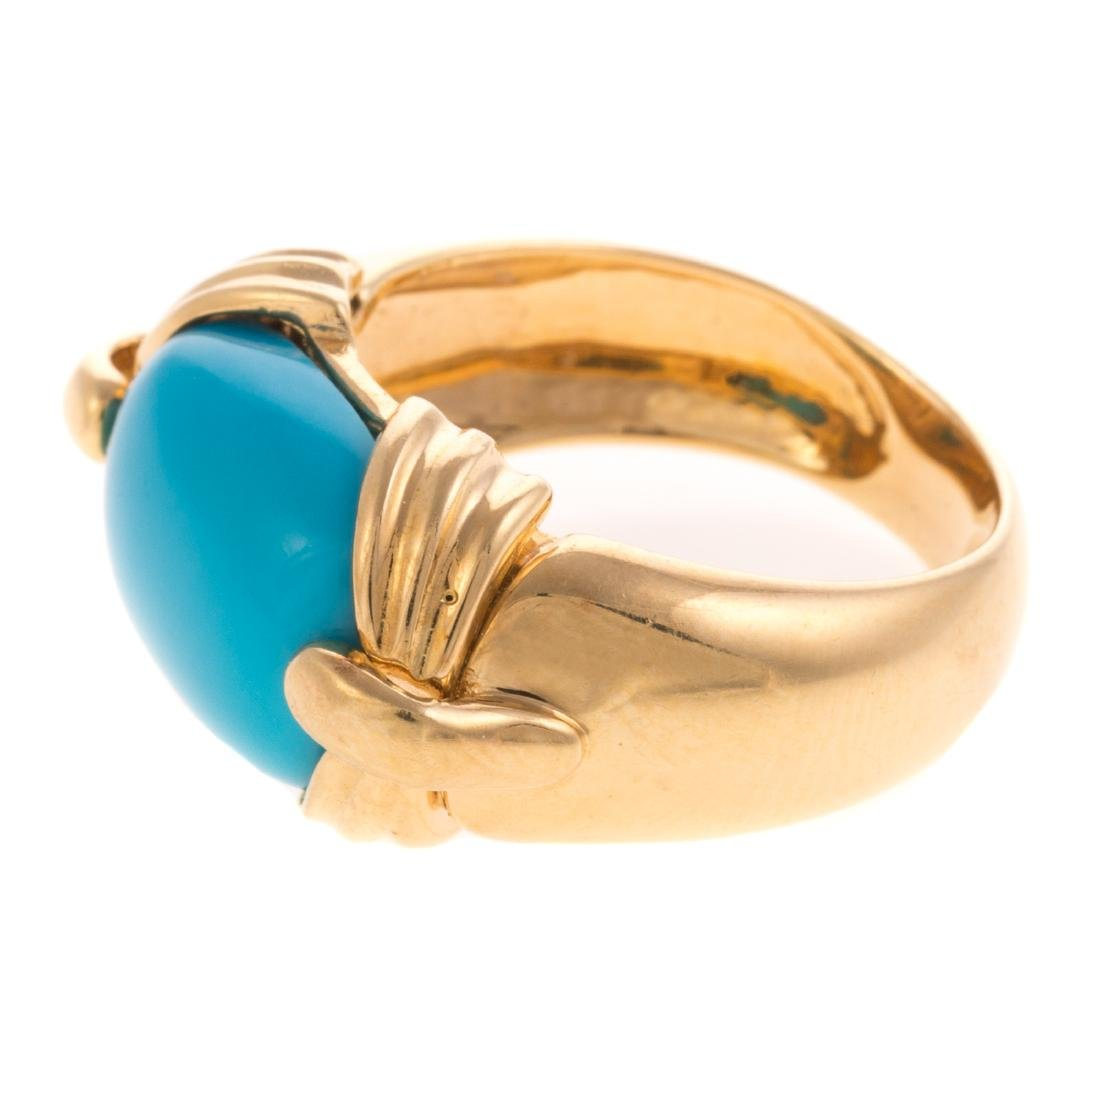 A Lady's Sleeping Beauty Turquoise Ring in 18K - 3